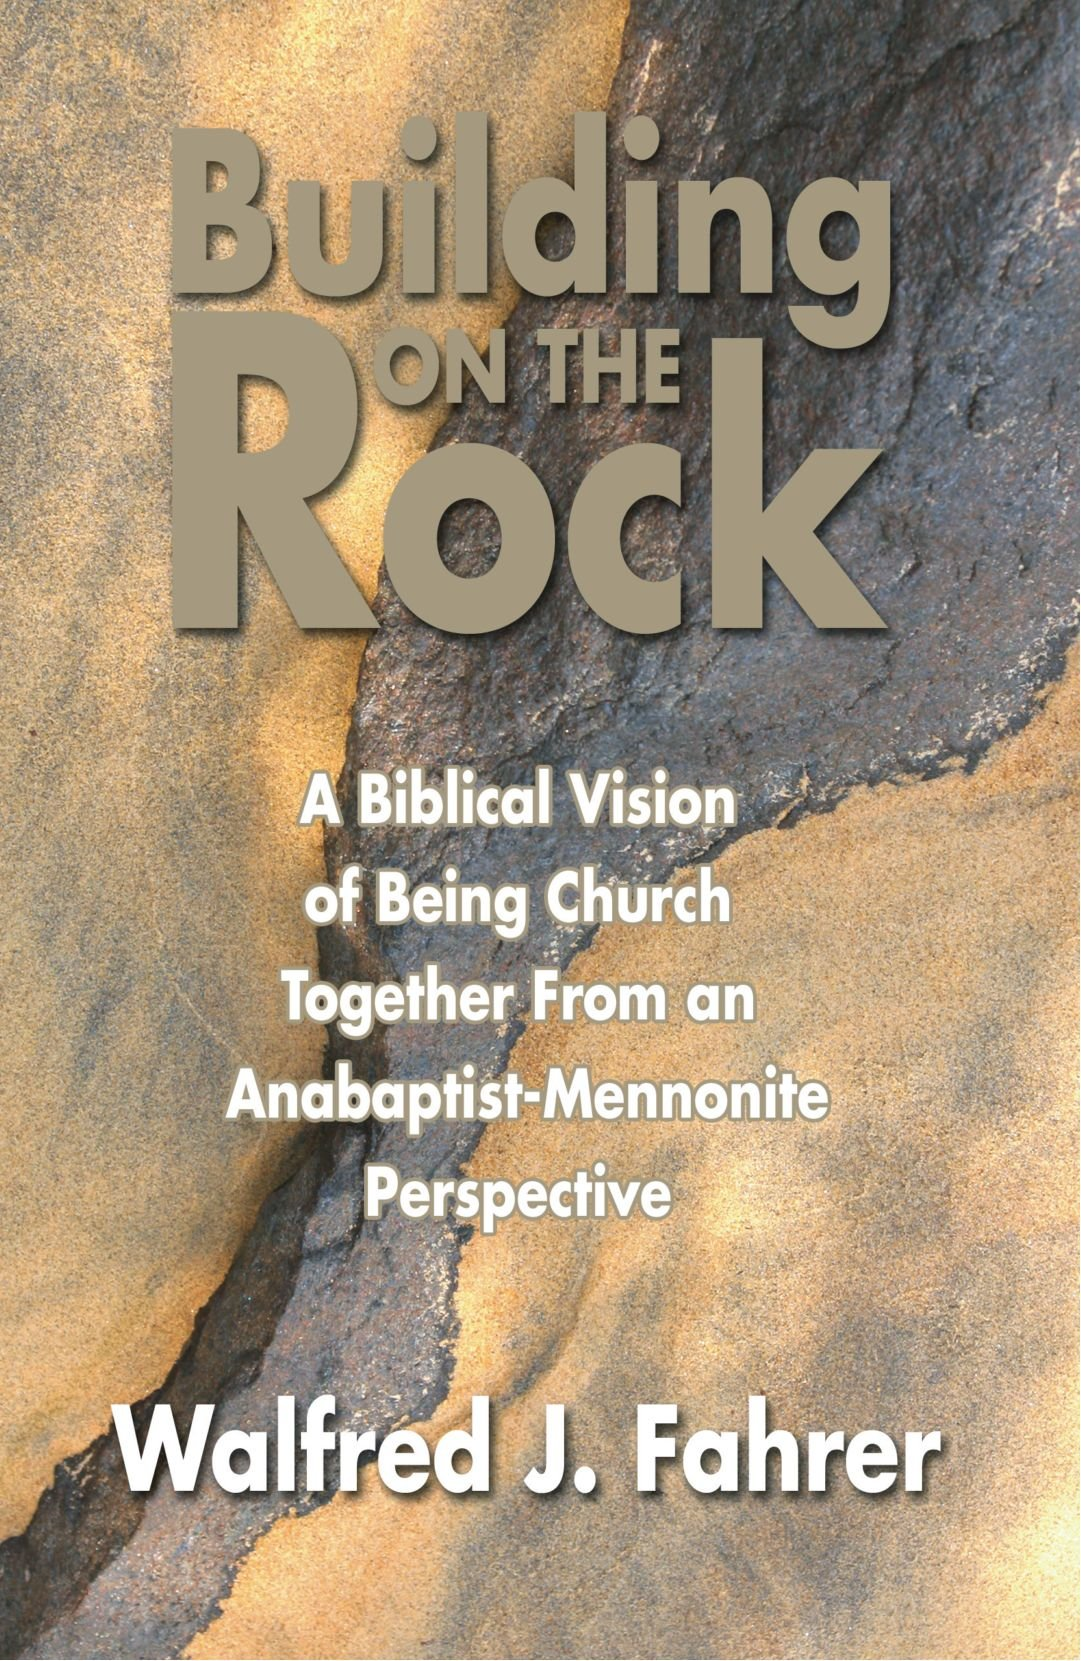 Building on the Rock: A Biblical Vision of Being Church Together from an Anabaptist-Mennonite Perspective PDF